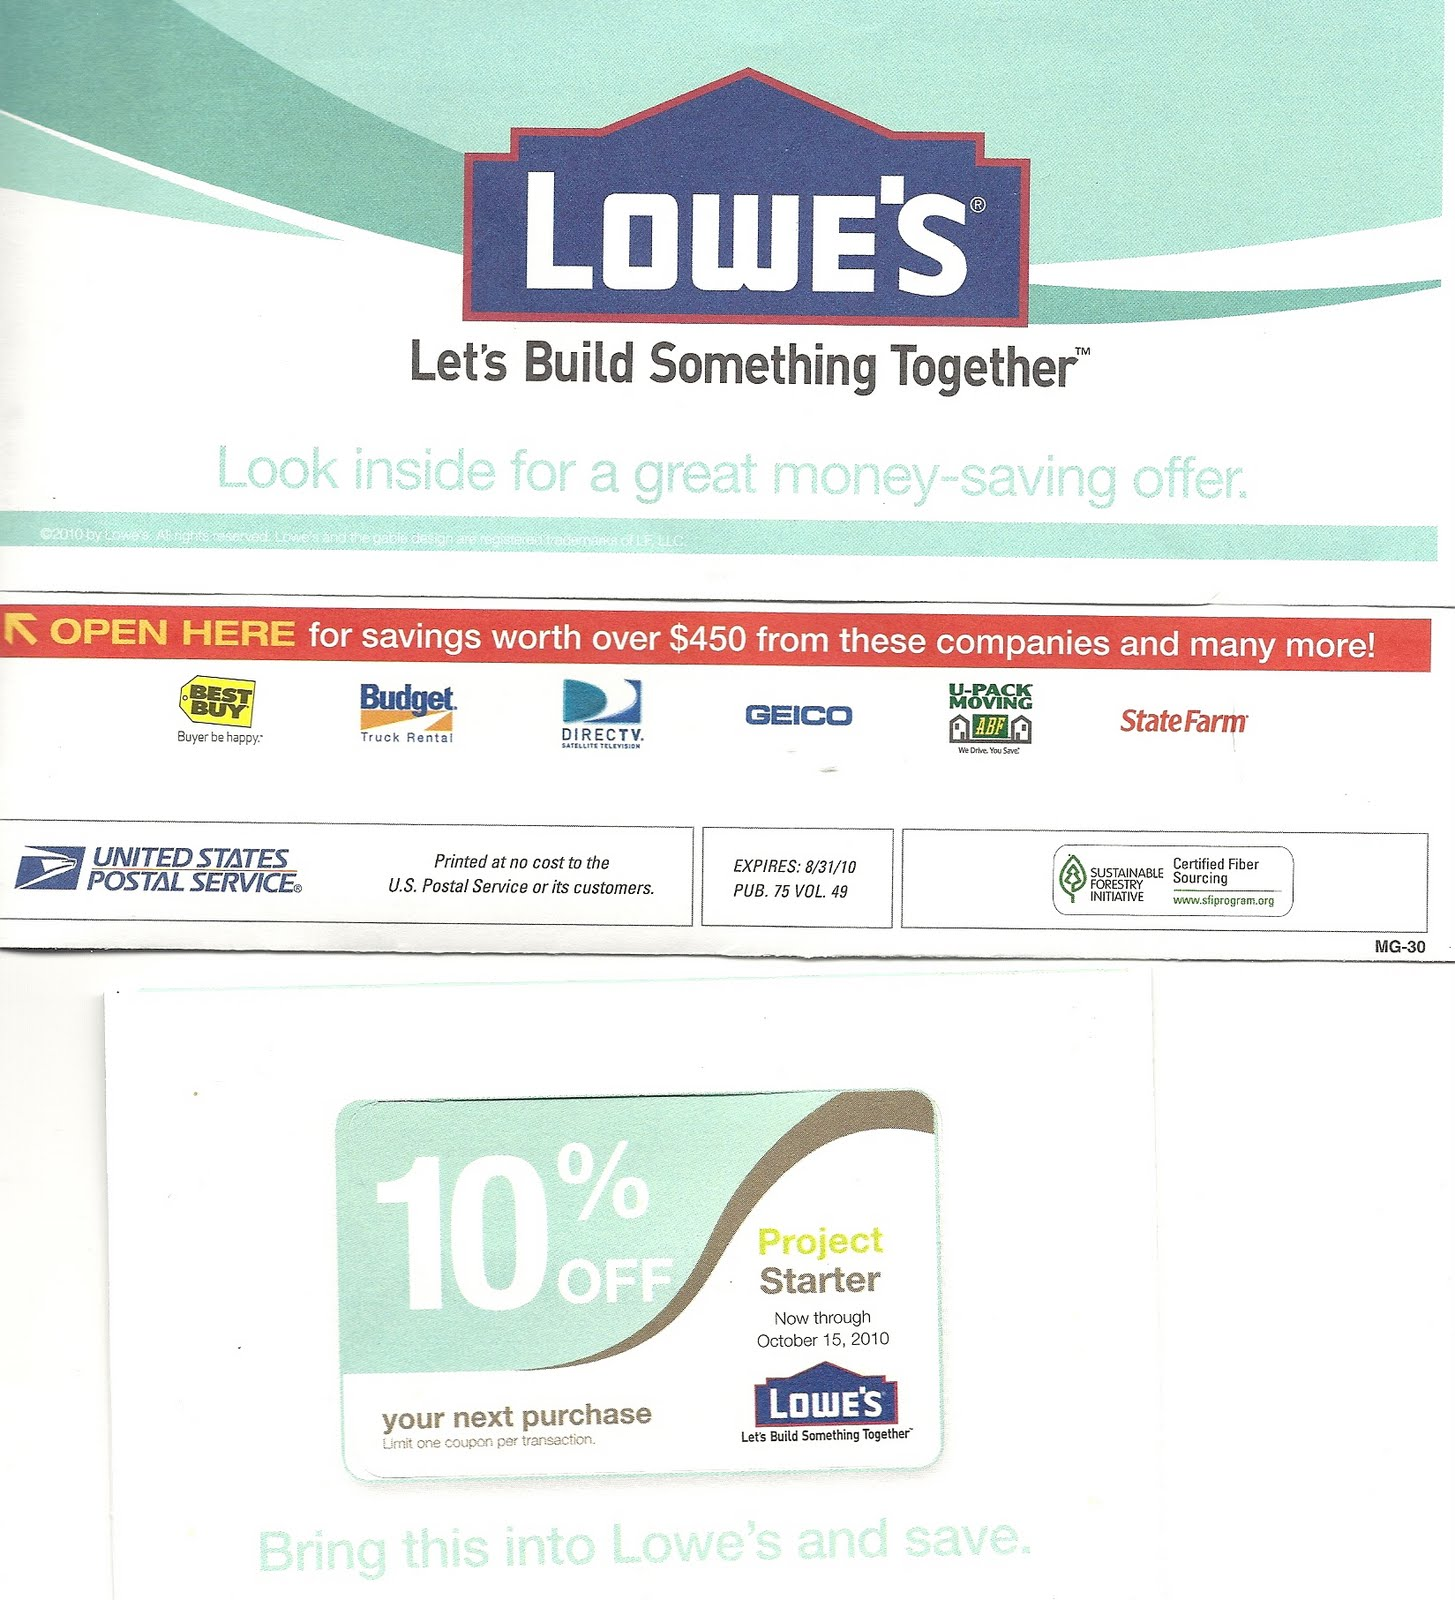 5. If you're expecting a new appliance, take advantage of the free moving service. For no additional cost, the delivery team will move your old appliance to a new spot in your home. 6. The Price Match Guarantee does not include competitors' coupons. If, however, you find a lower price on the Lowe's mobile app, the store will match it. 7.